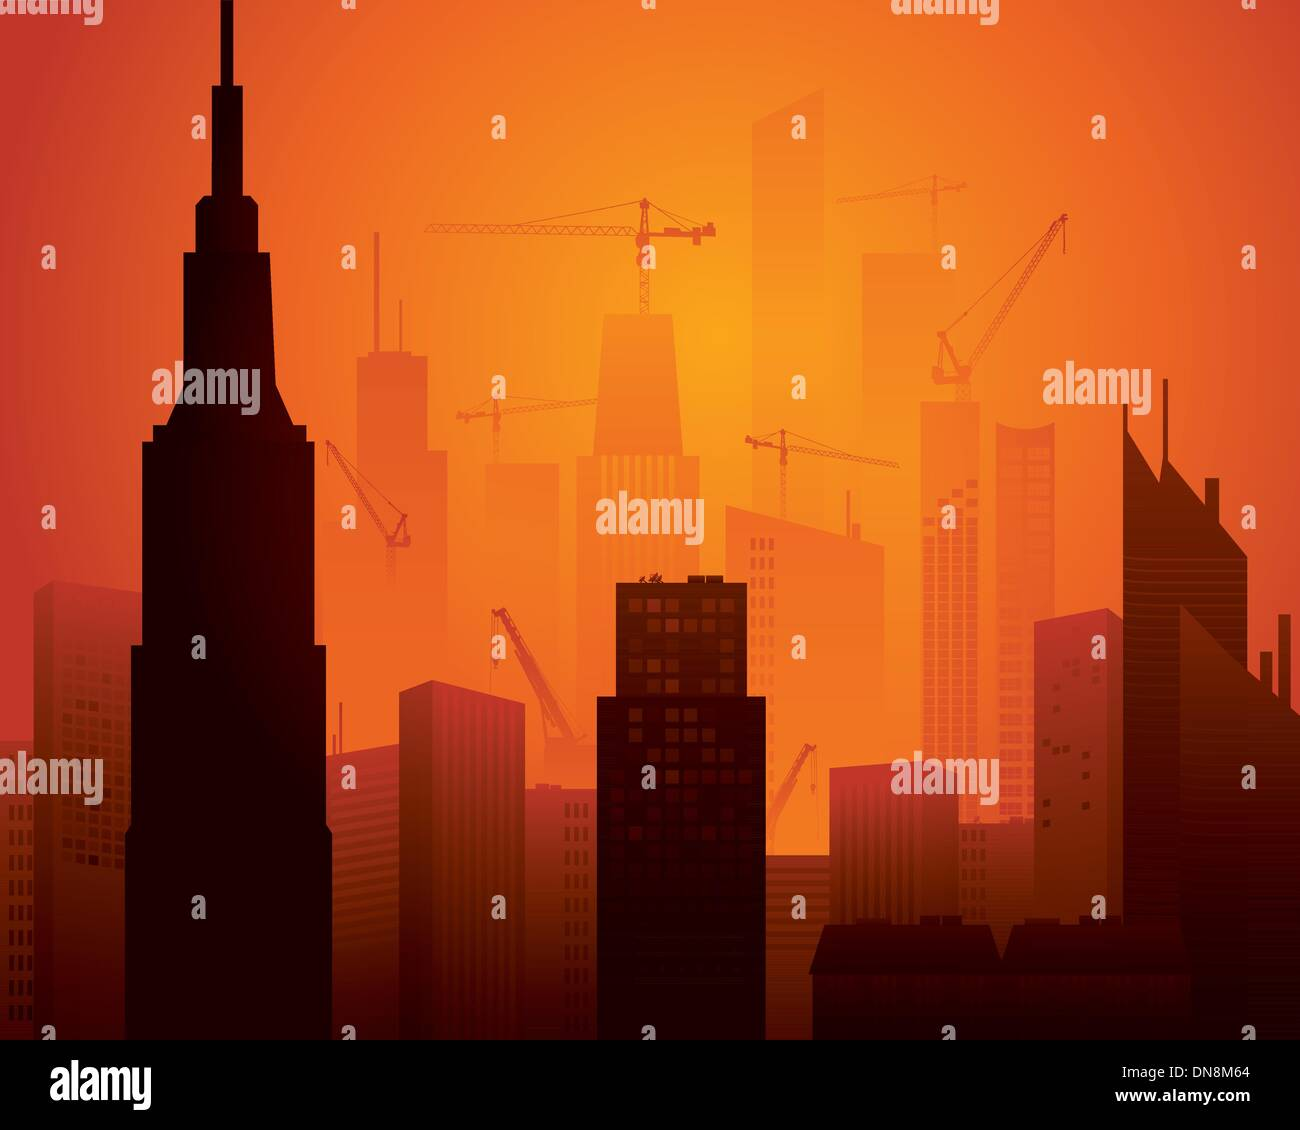 High rise construction - Stock Vector